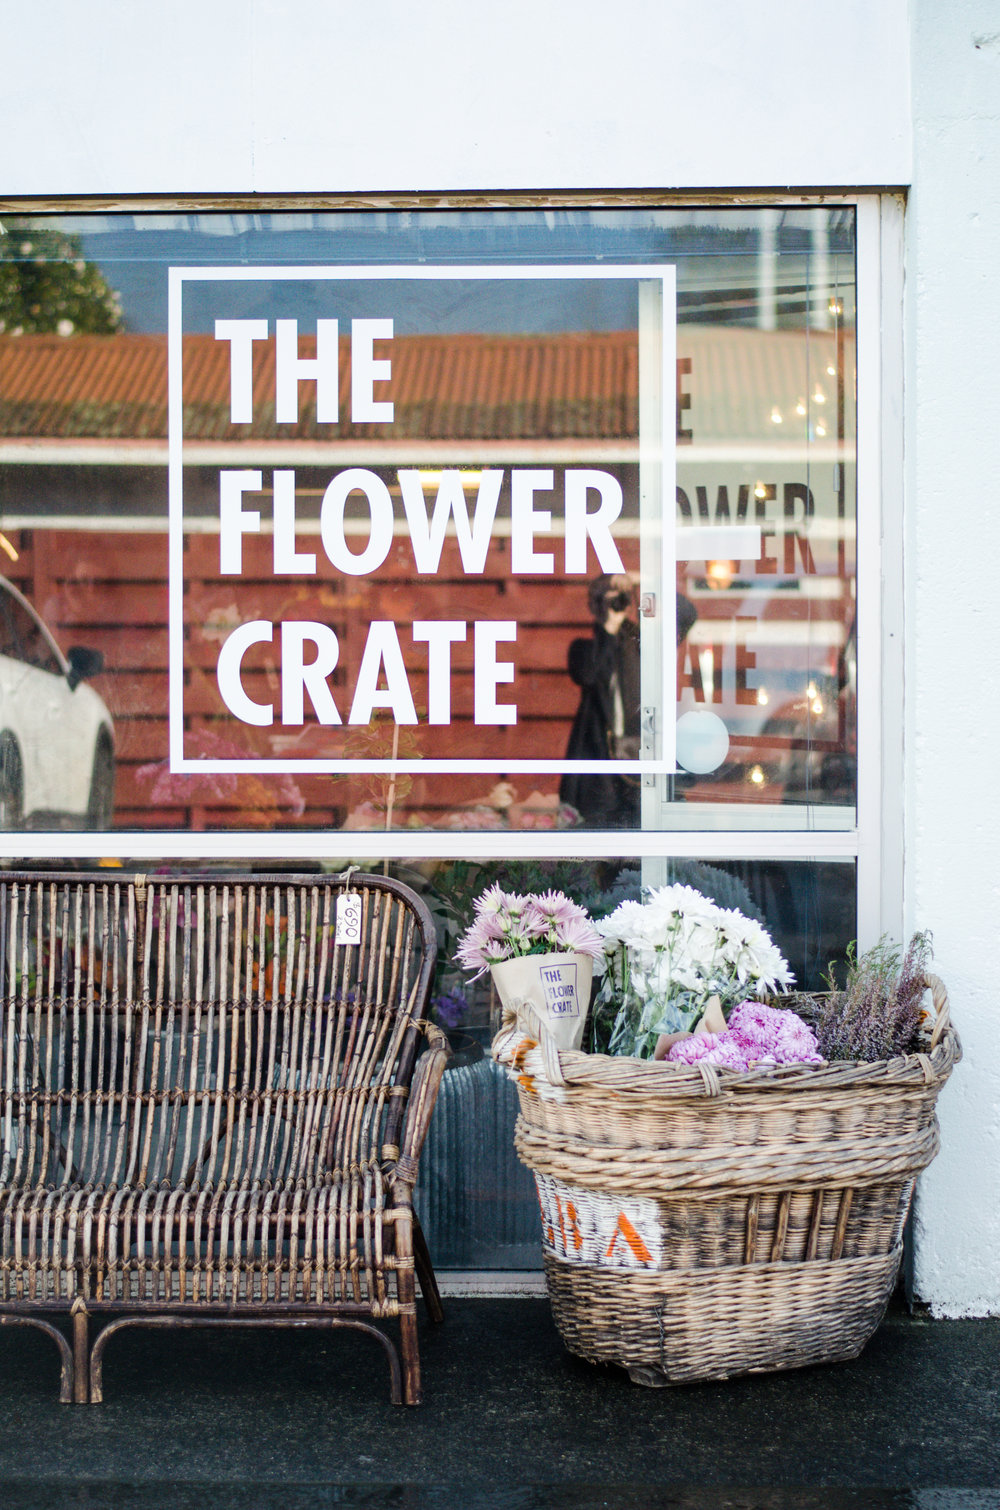 flower-crate-2-1-of-1.jpg